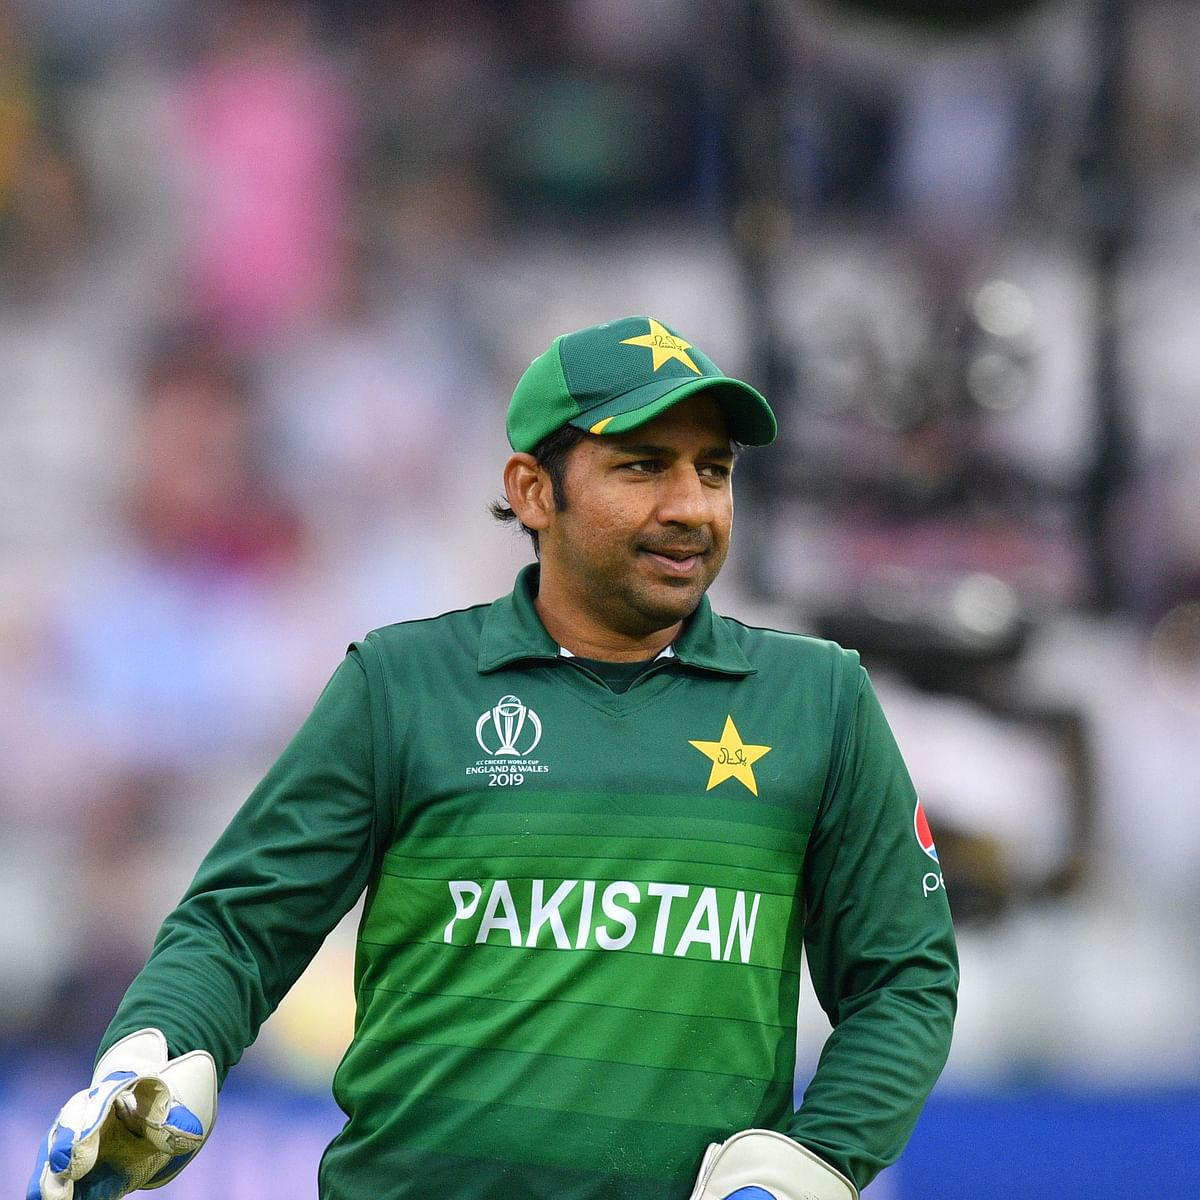 Haris Sohail batted like Jos Buttler against South Africa: Sarfaraz Ahmed